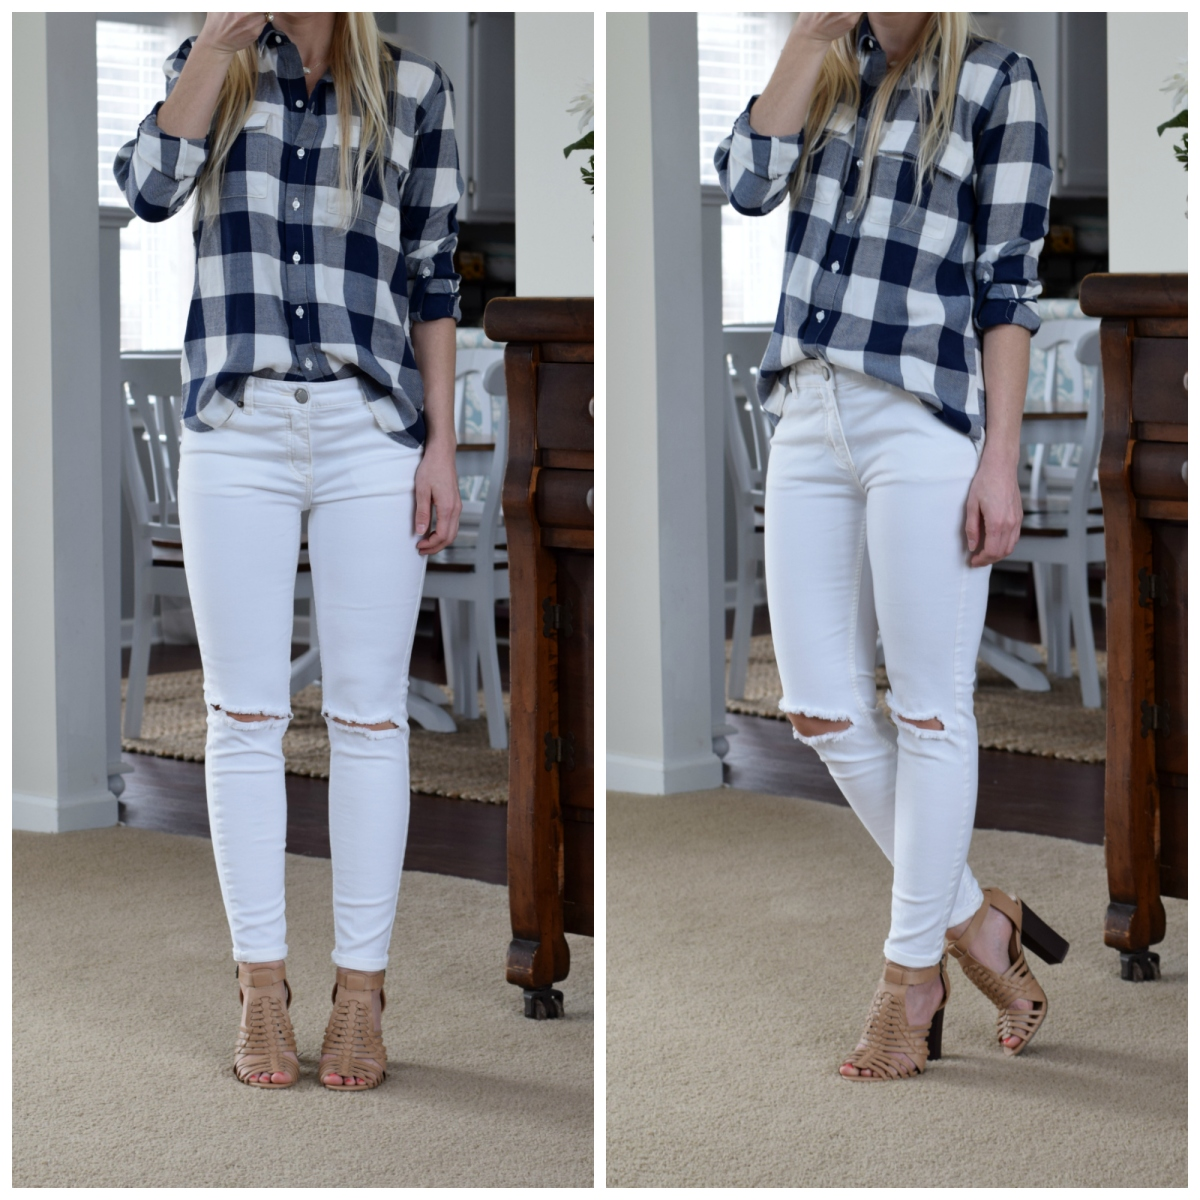 gingham, white skinny jeans, and mules |www.pearlsandsportsbras.com|